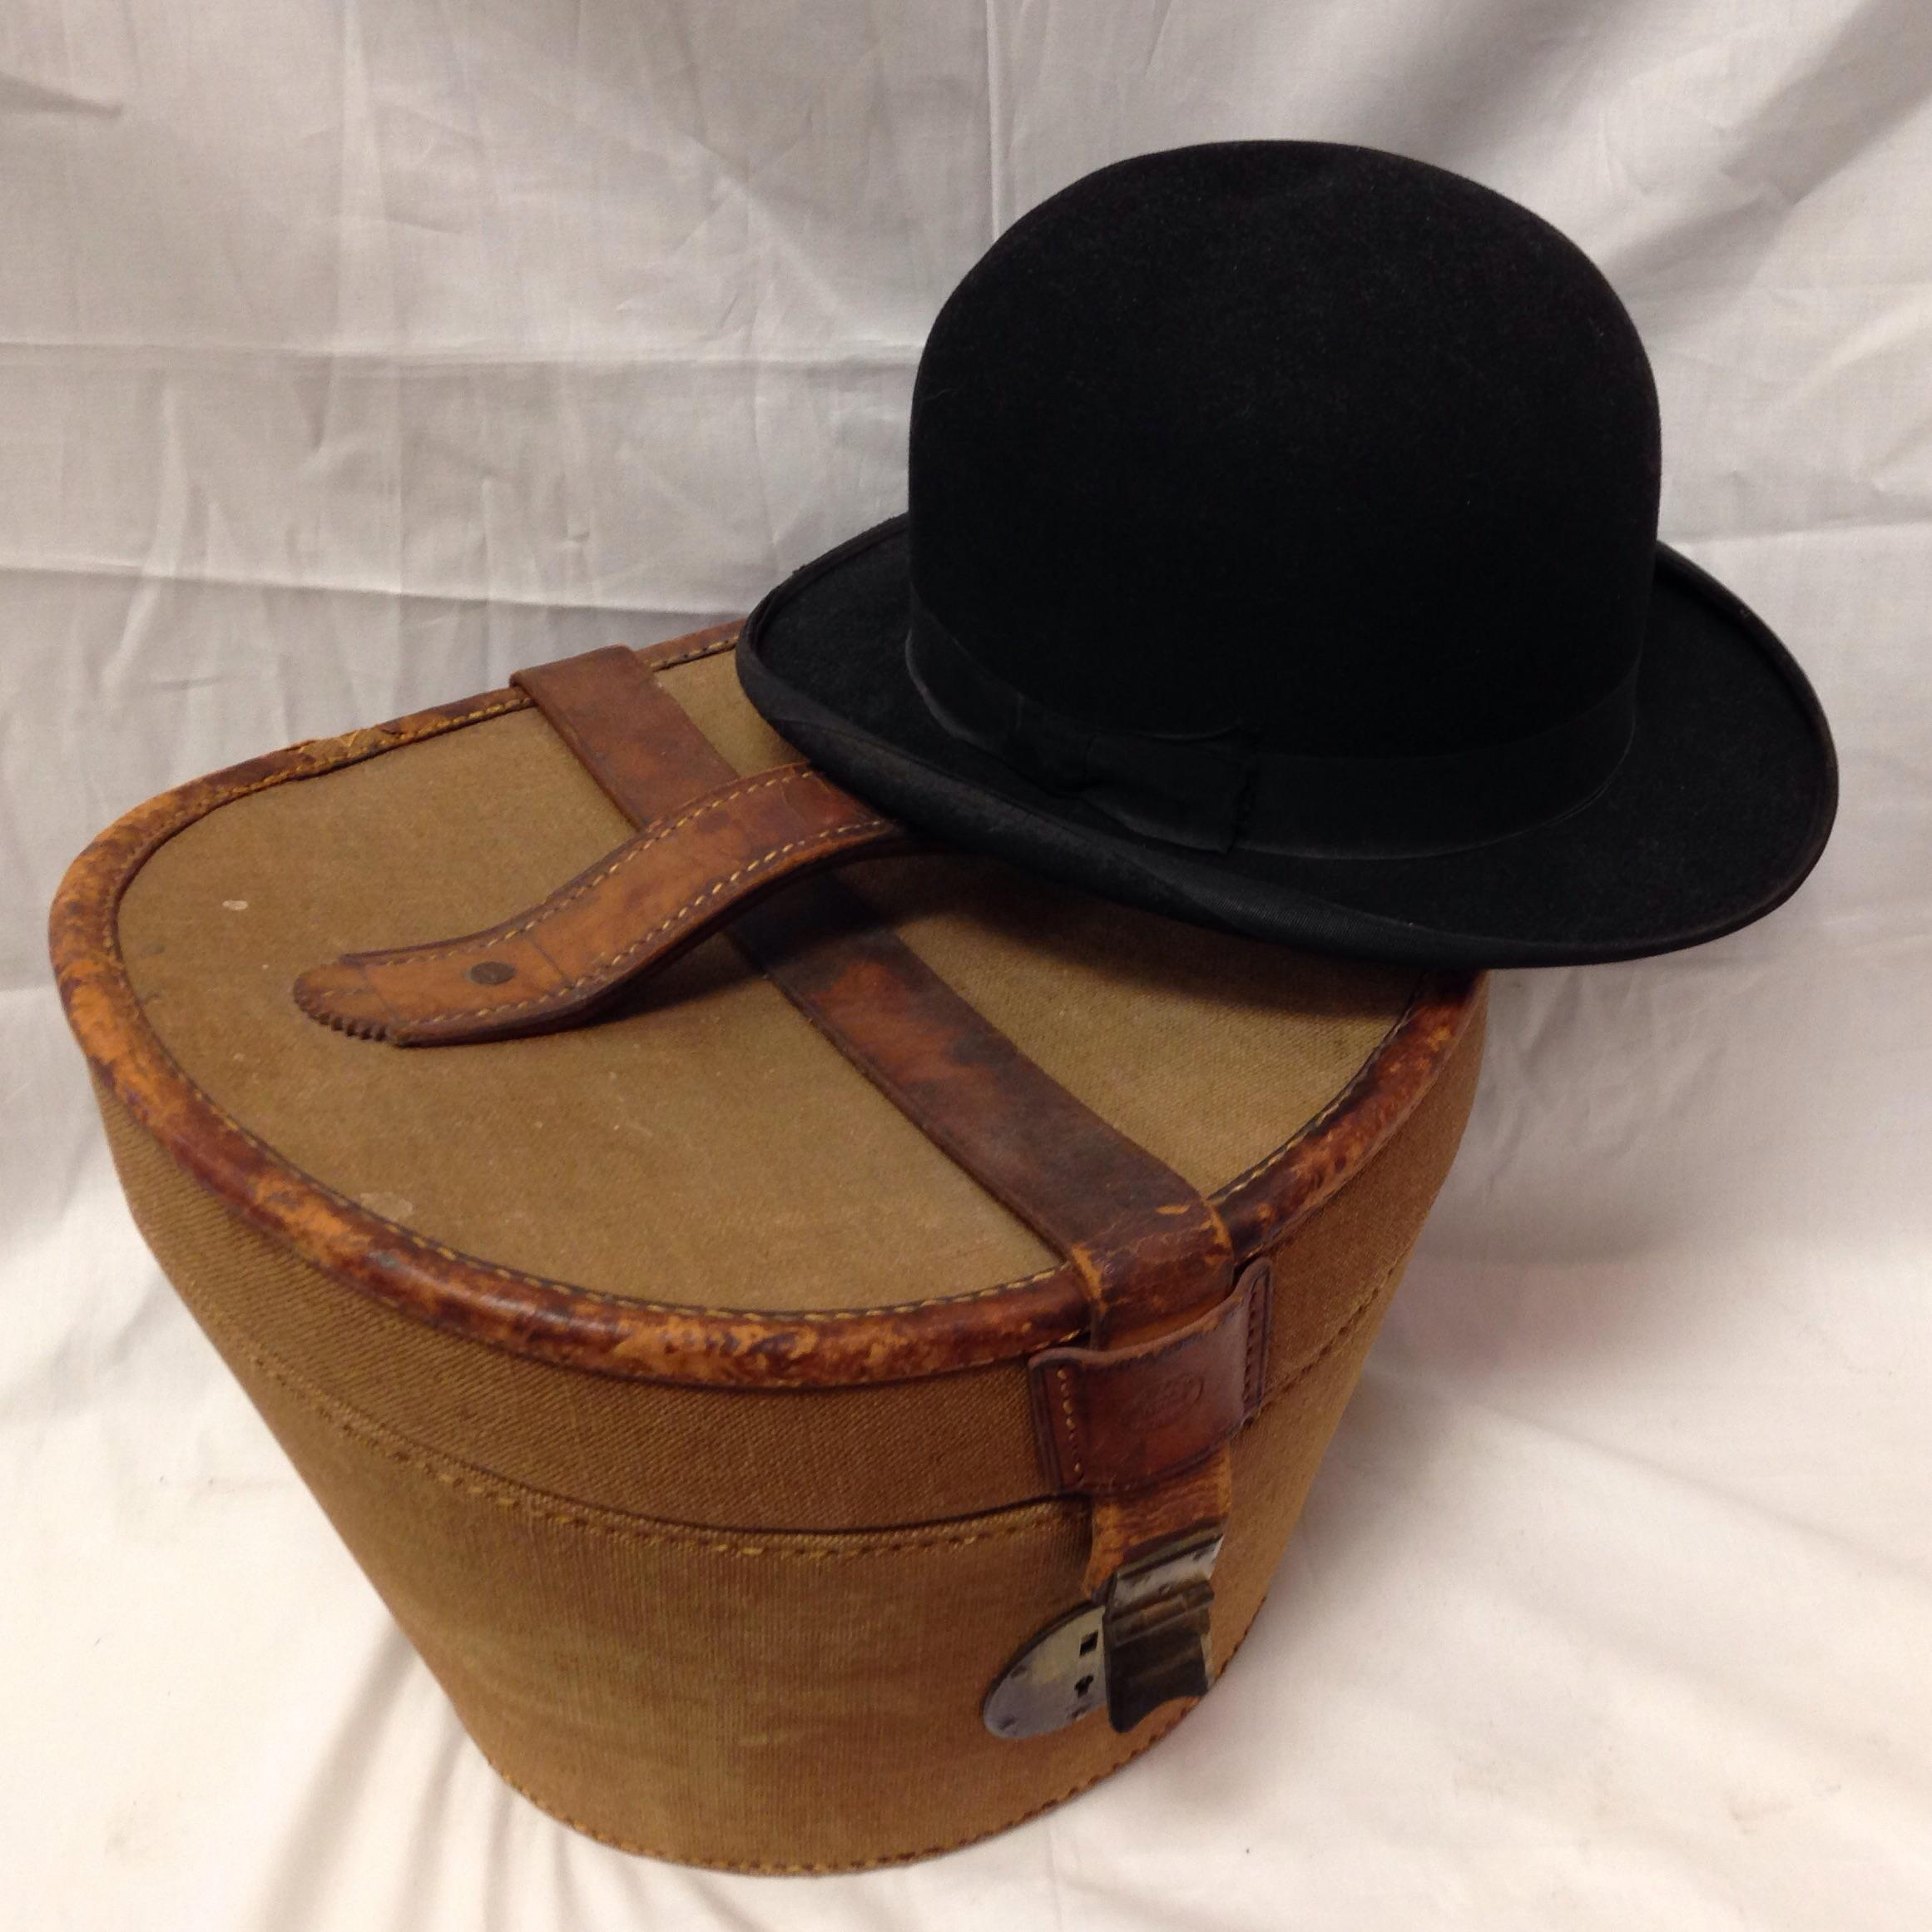 Gorgeous Antique Bowler Hat That Comes In A Stunning Storage Case. The  Bowler Hat Which